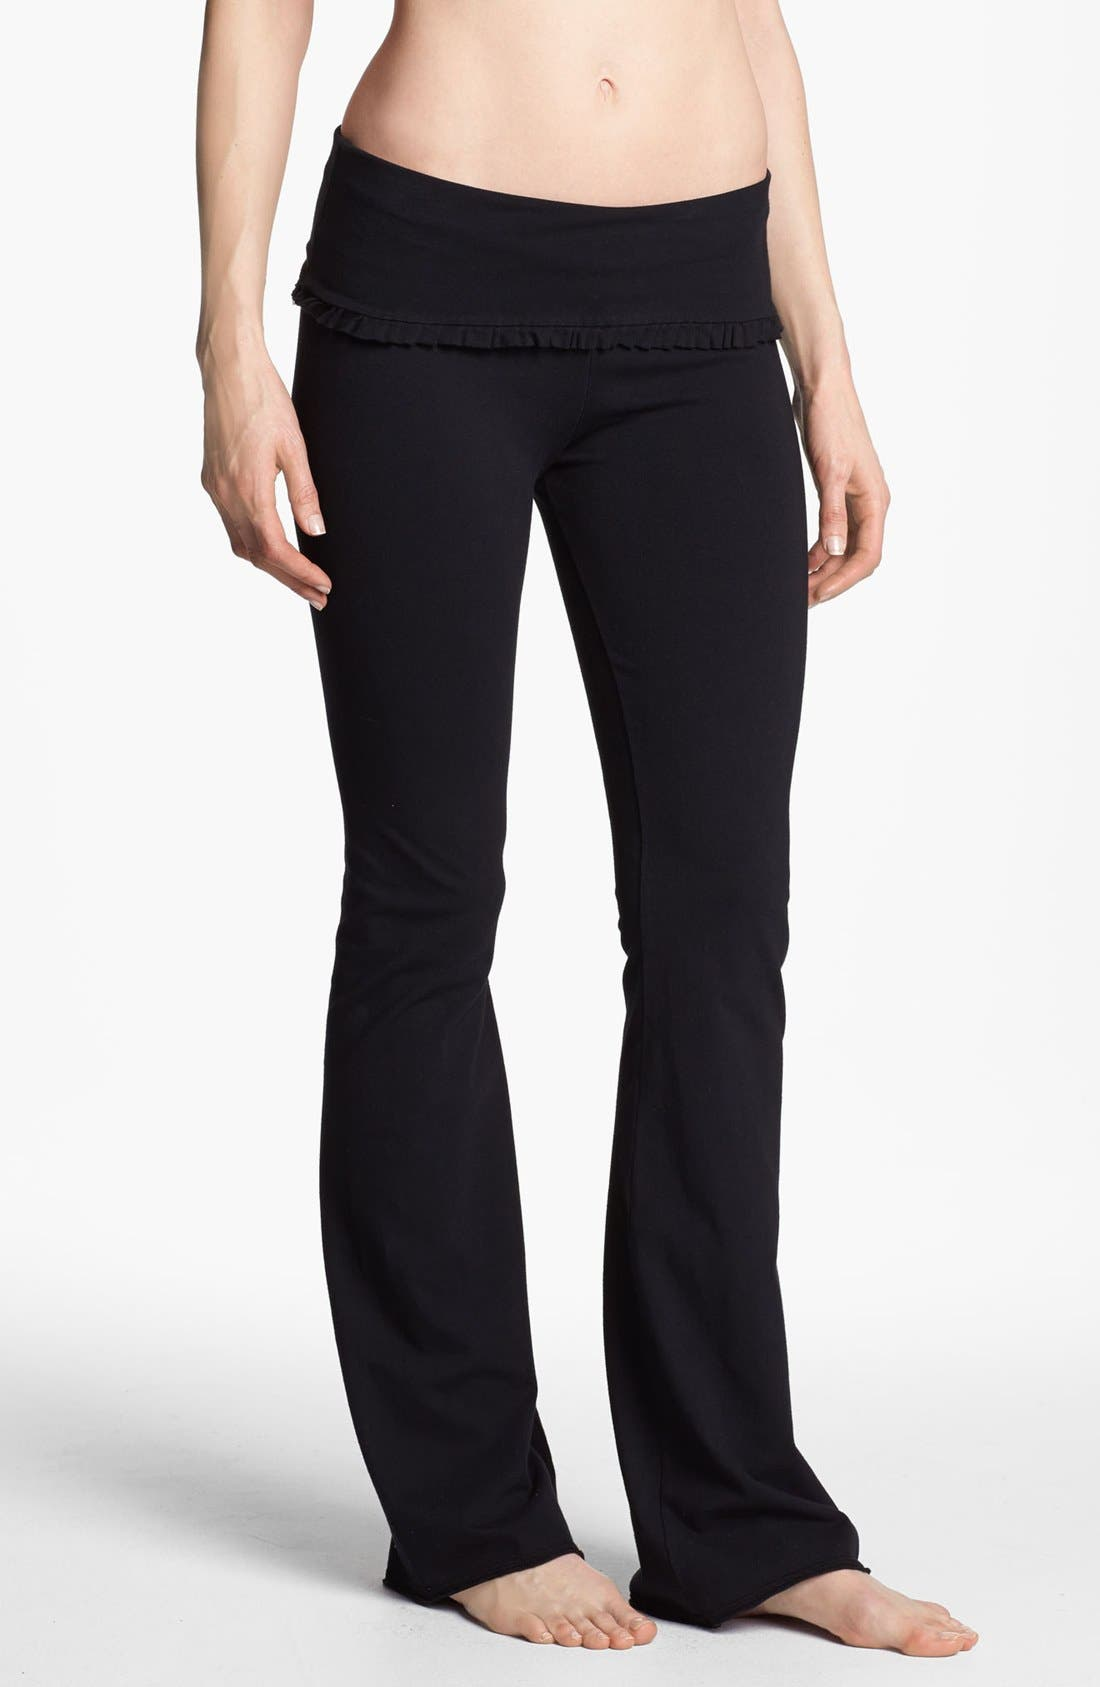 Alternate Image 1 Selected - Solow Ruffle Foldover Pants